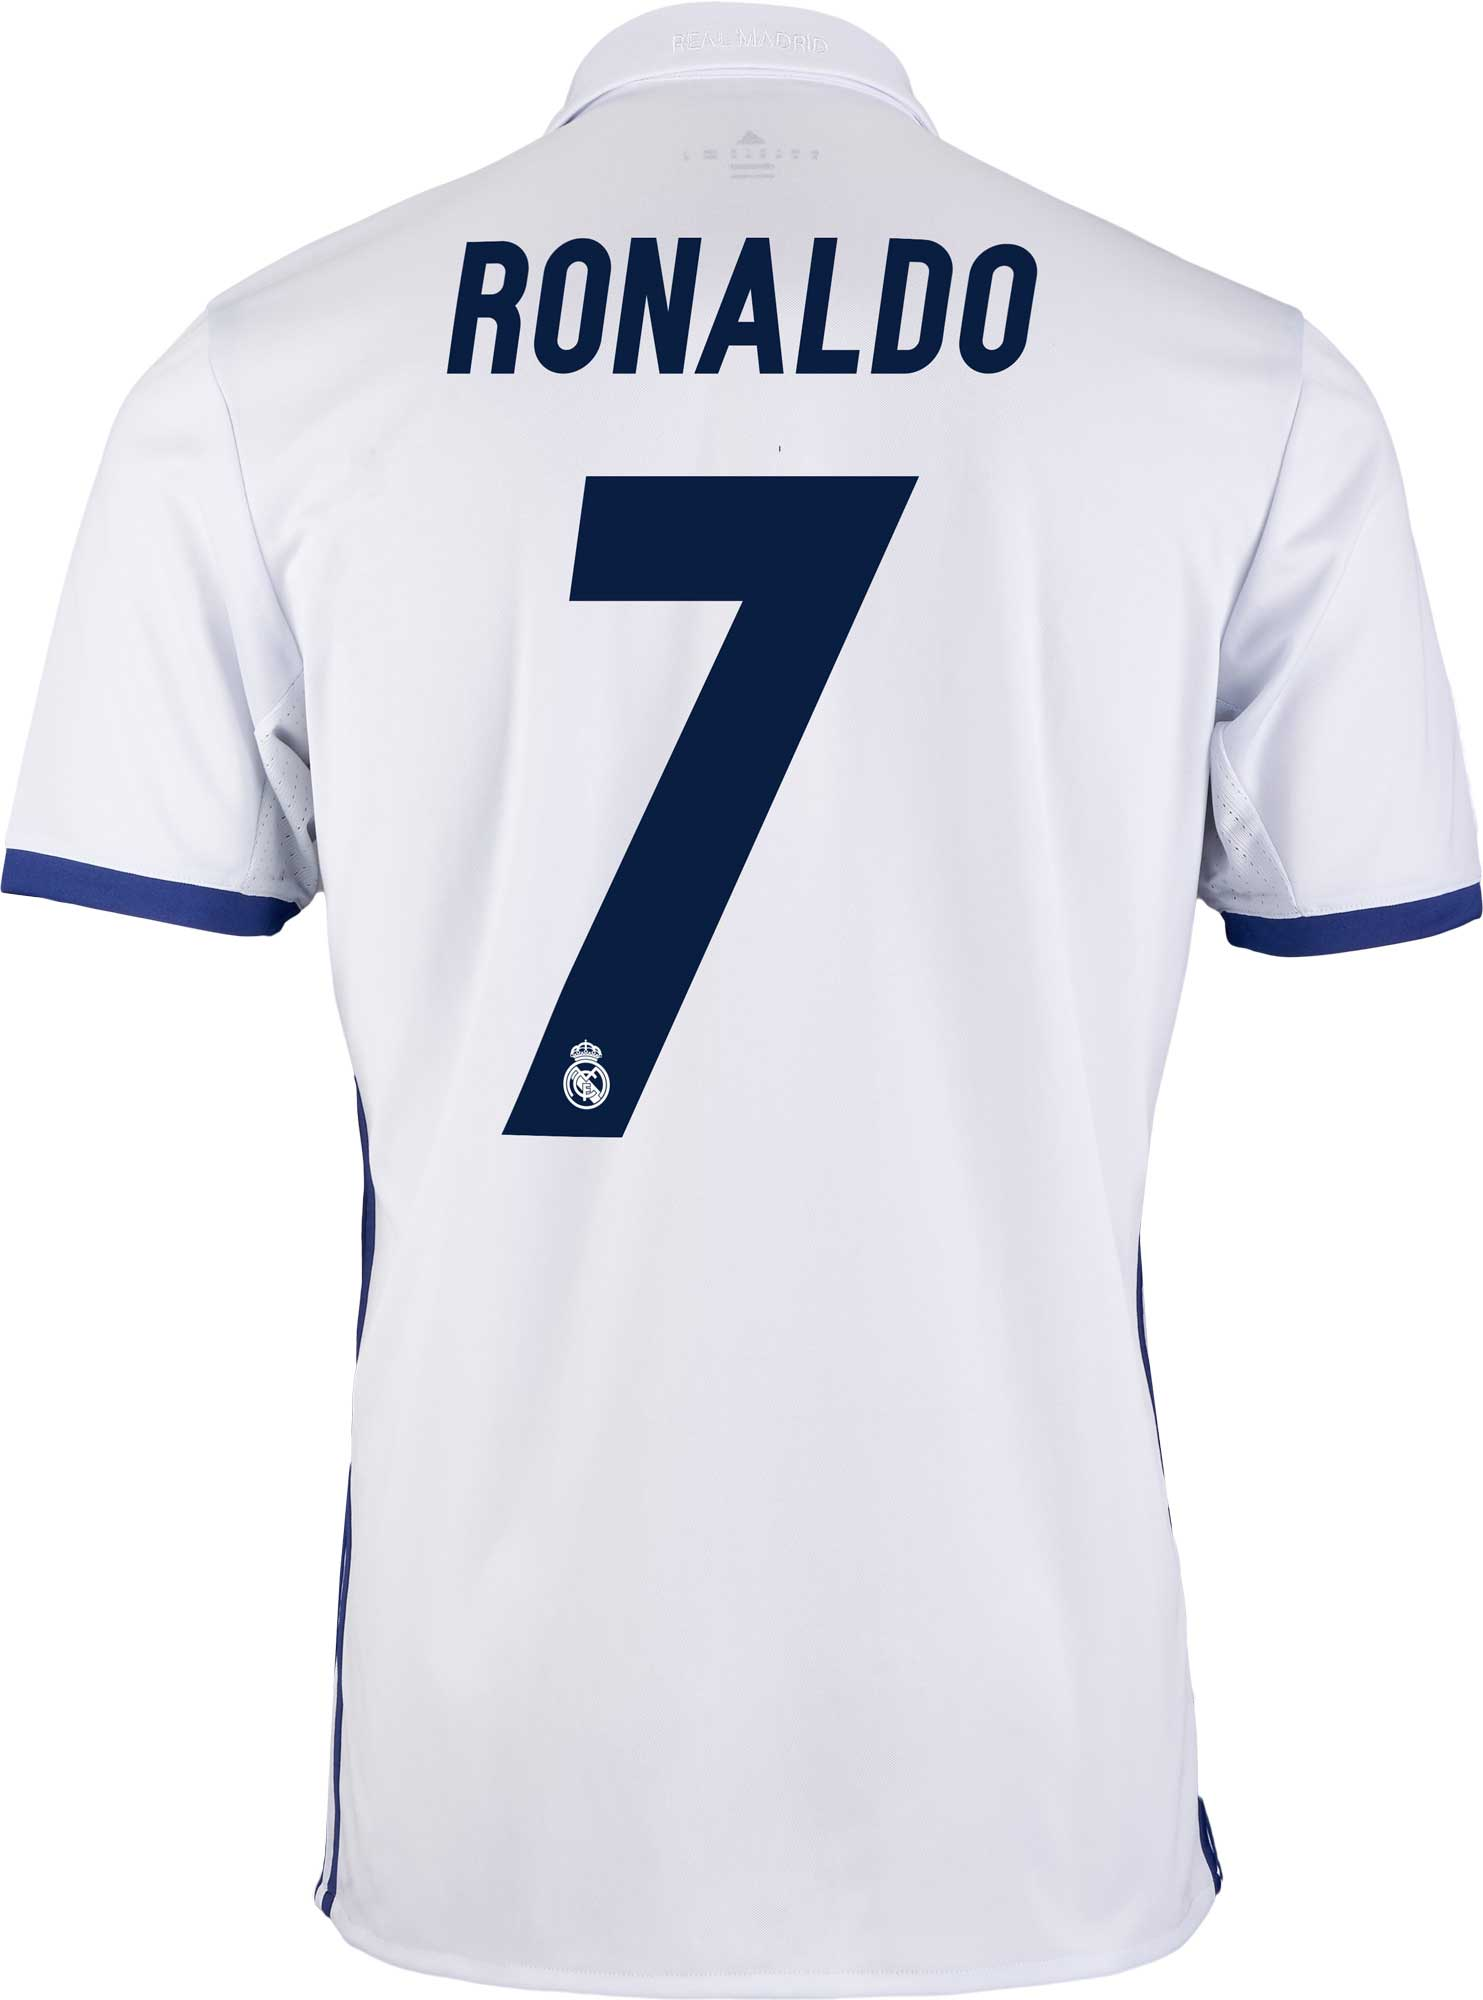 finest selection 5d39f 1c2e6 adidas Kids Ronaldo Real Madrid Jersey - 2016 Real Madrid ...